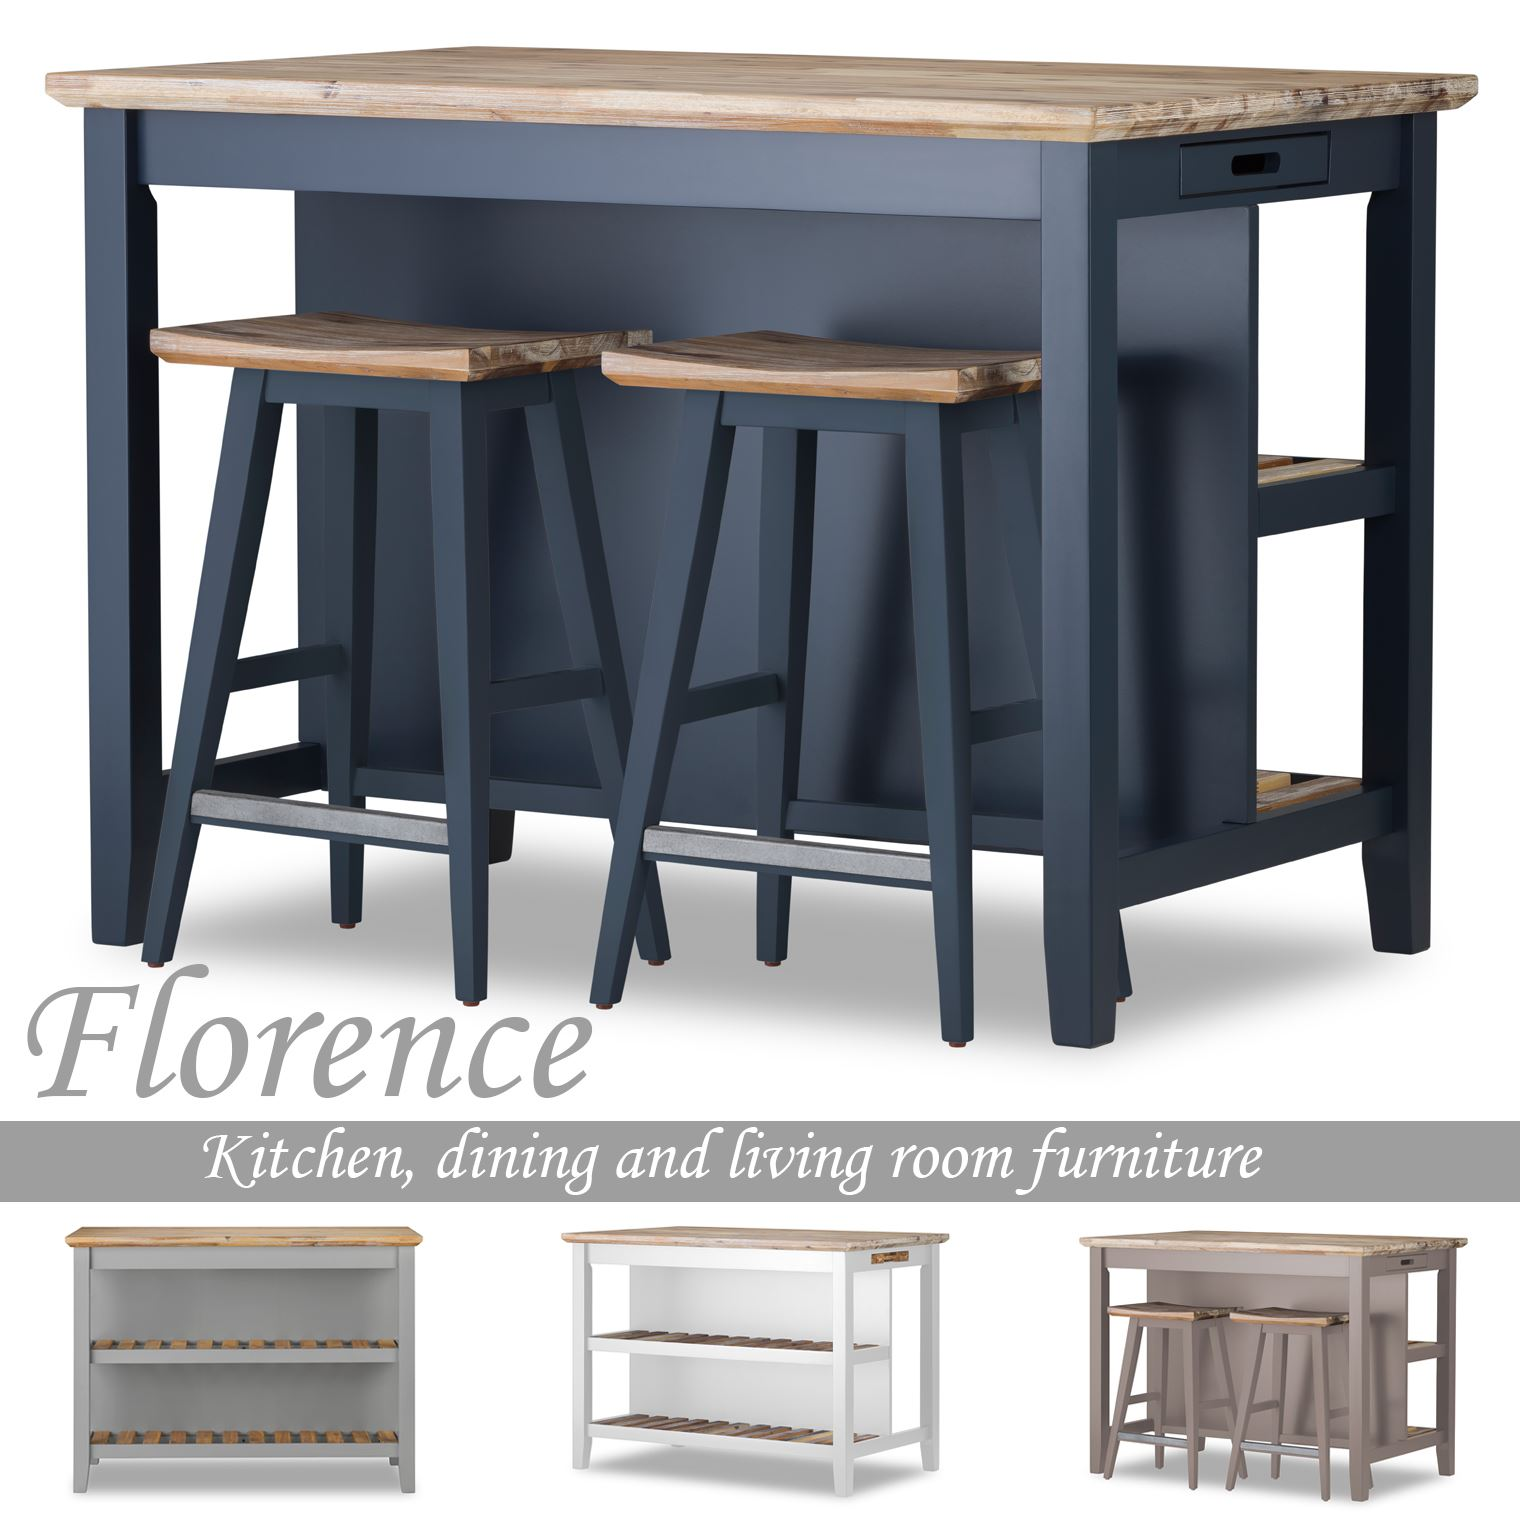 Details About Florence Breakfast Bar With 2 Large Shelves Small Kitchen Island With Storage